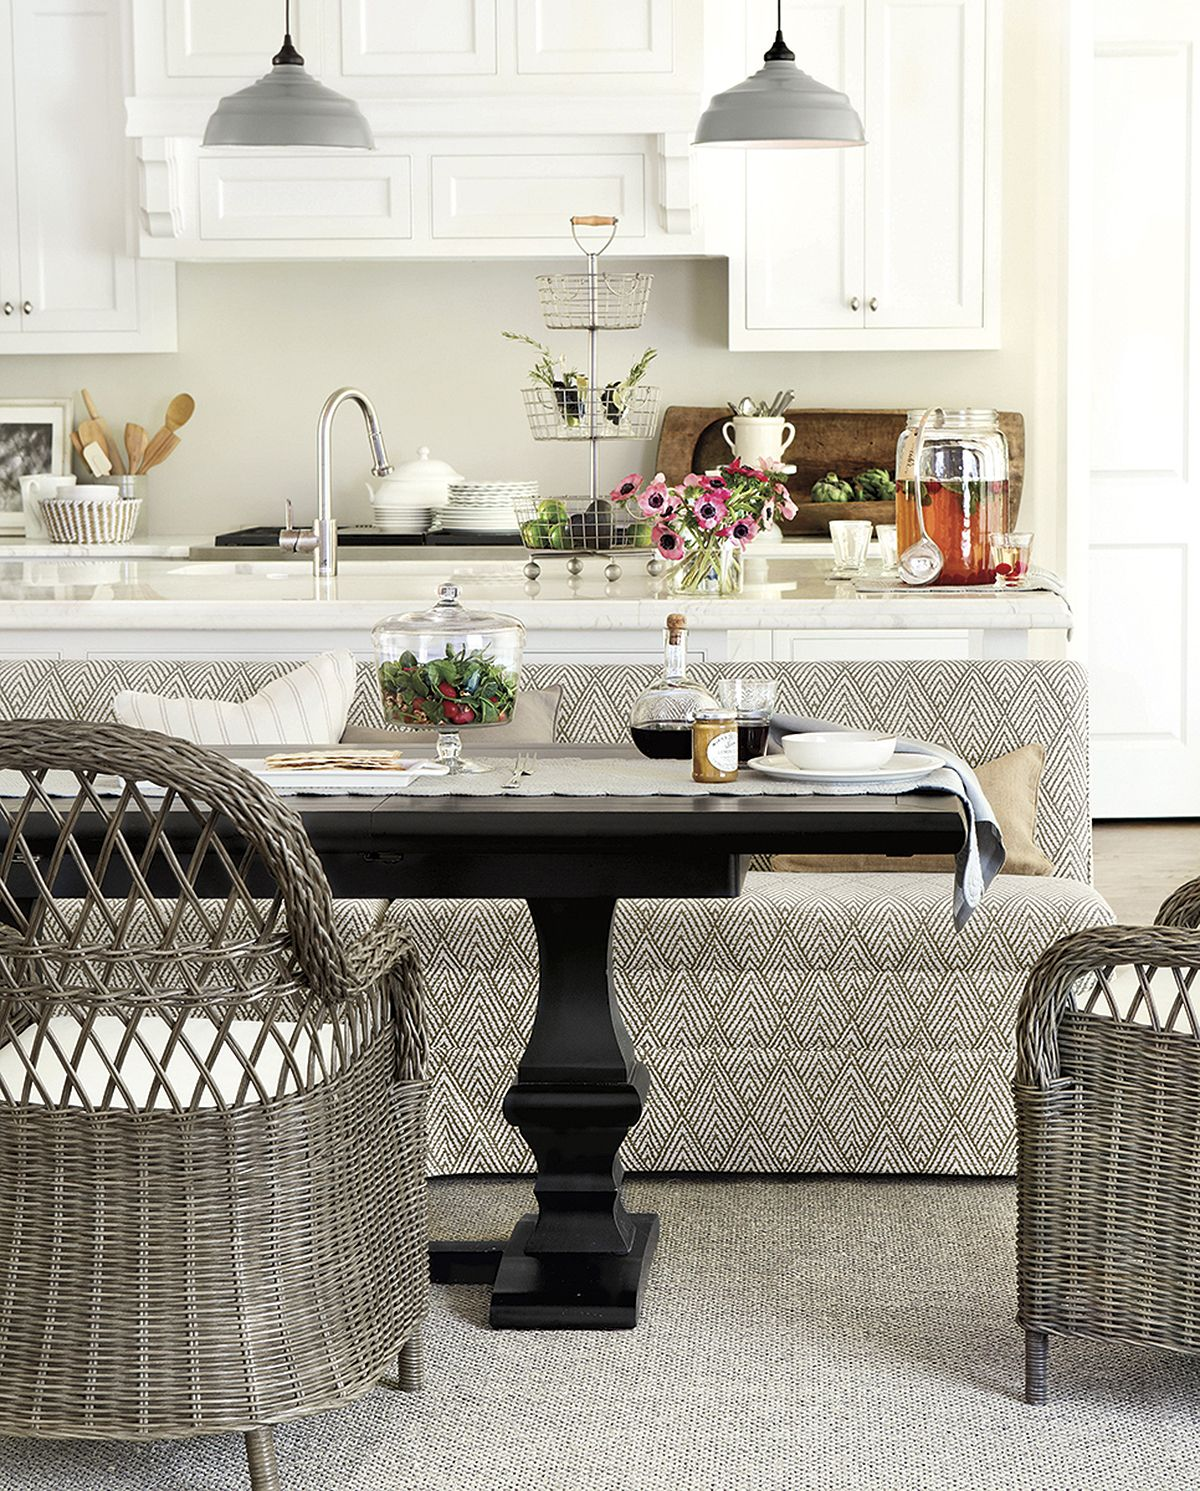 Lovely Breakfast Banquette From Ballard Designs. Kitchen BenchesKitchen Island ...